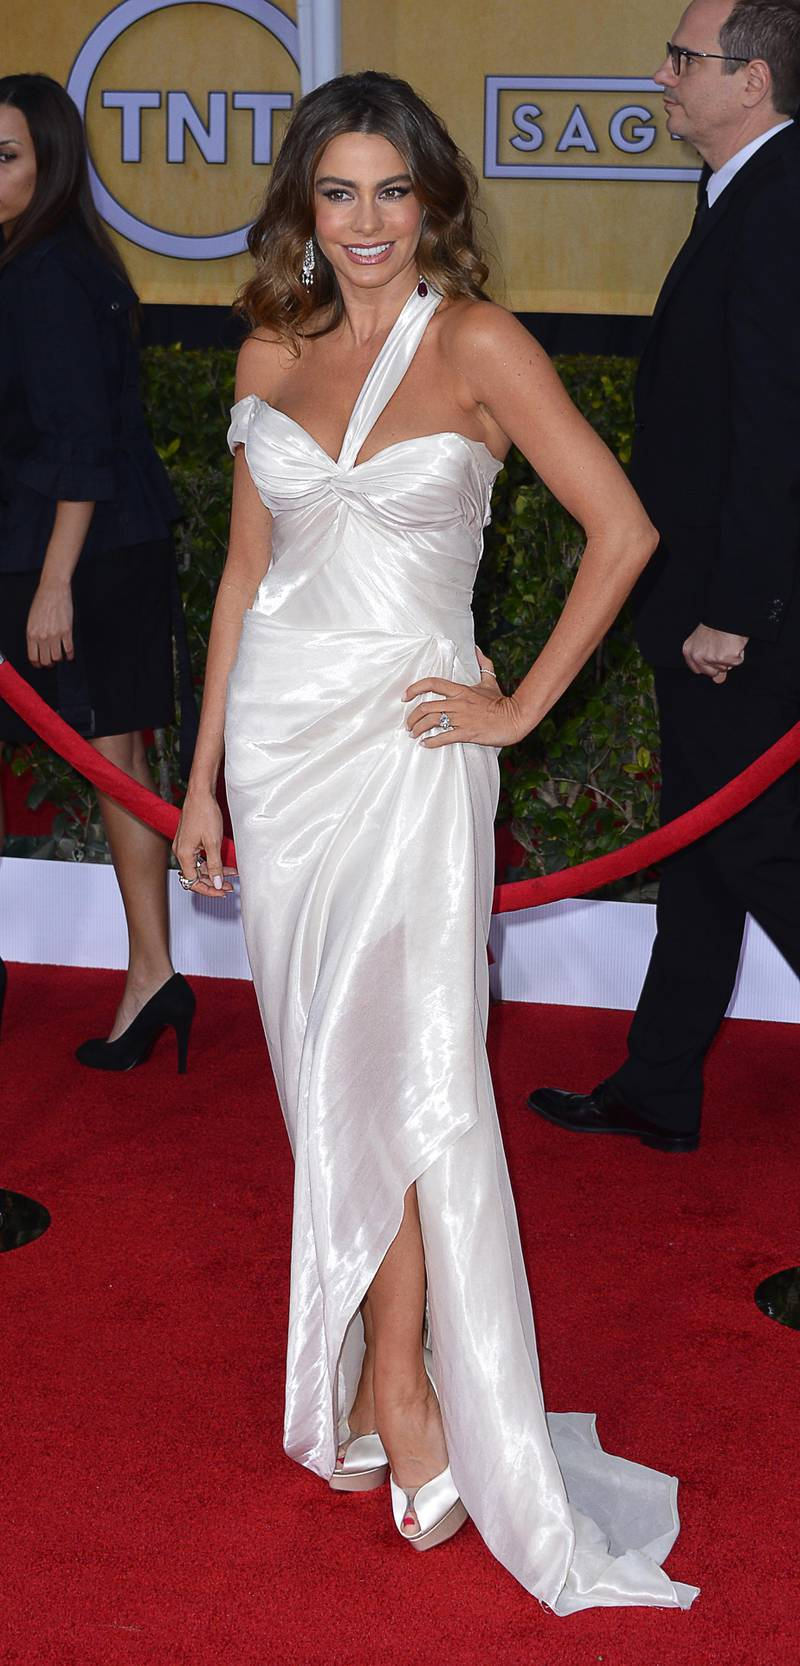 epa03559338 Colombian actress Sofia Vergara arrives for the 19th annual Screen Actors Guild Awards at Shrine Auditorium in Los Angeles, California, USA, 27 January 2013.  EPA/PAUL BUCK